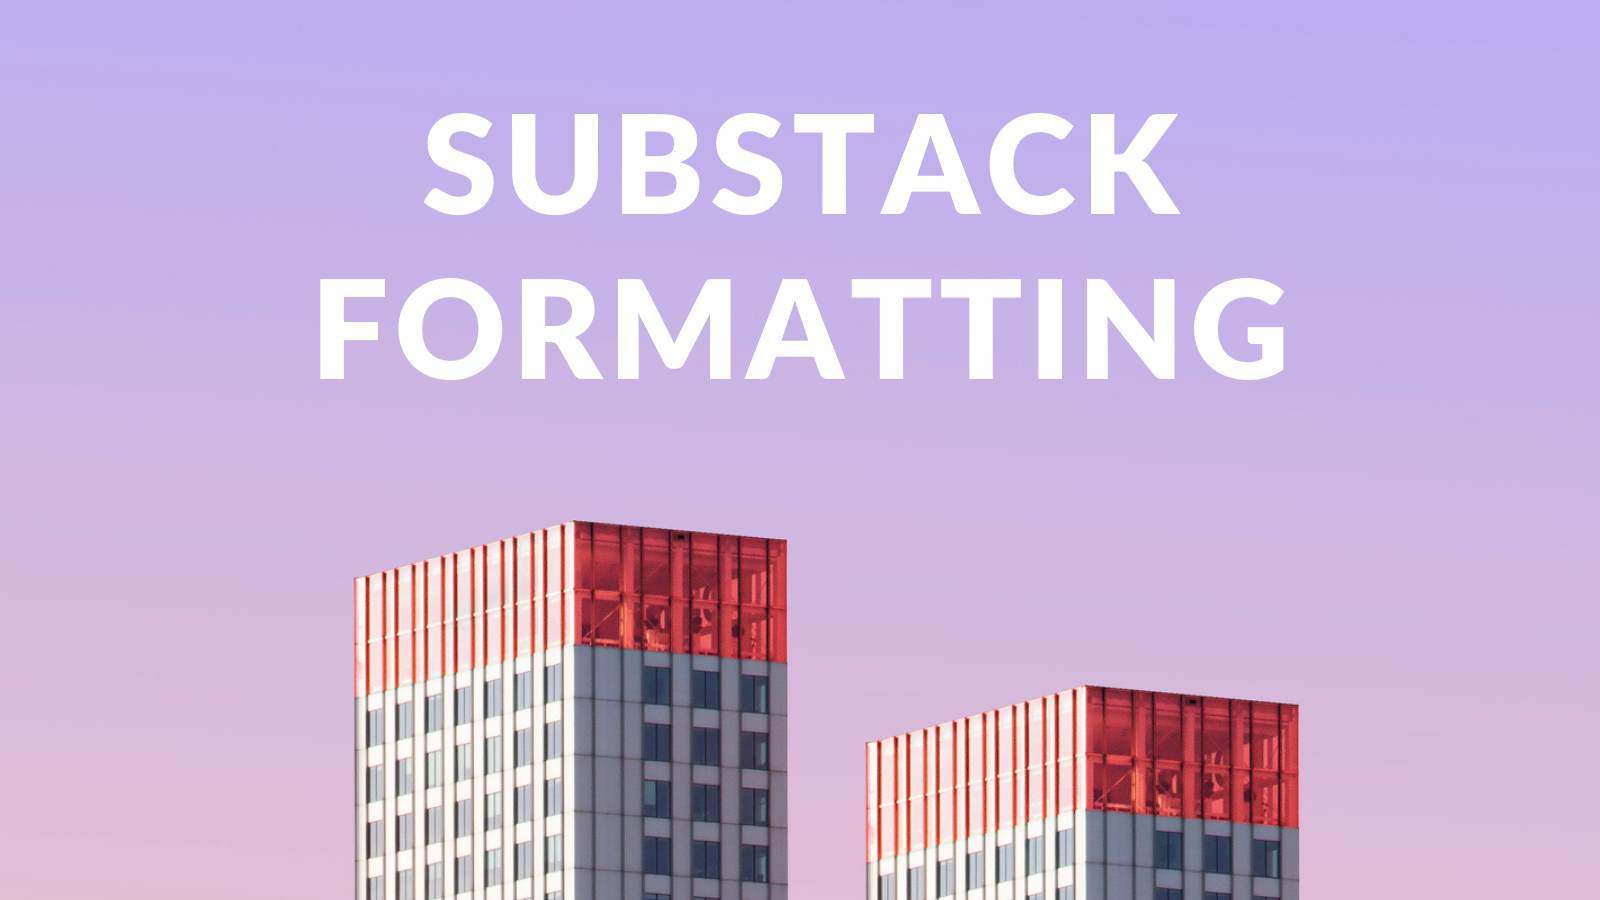 substack formatting, substack format, substack faq, substack editor, substack newsletter, what is substack, substack review